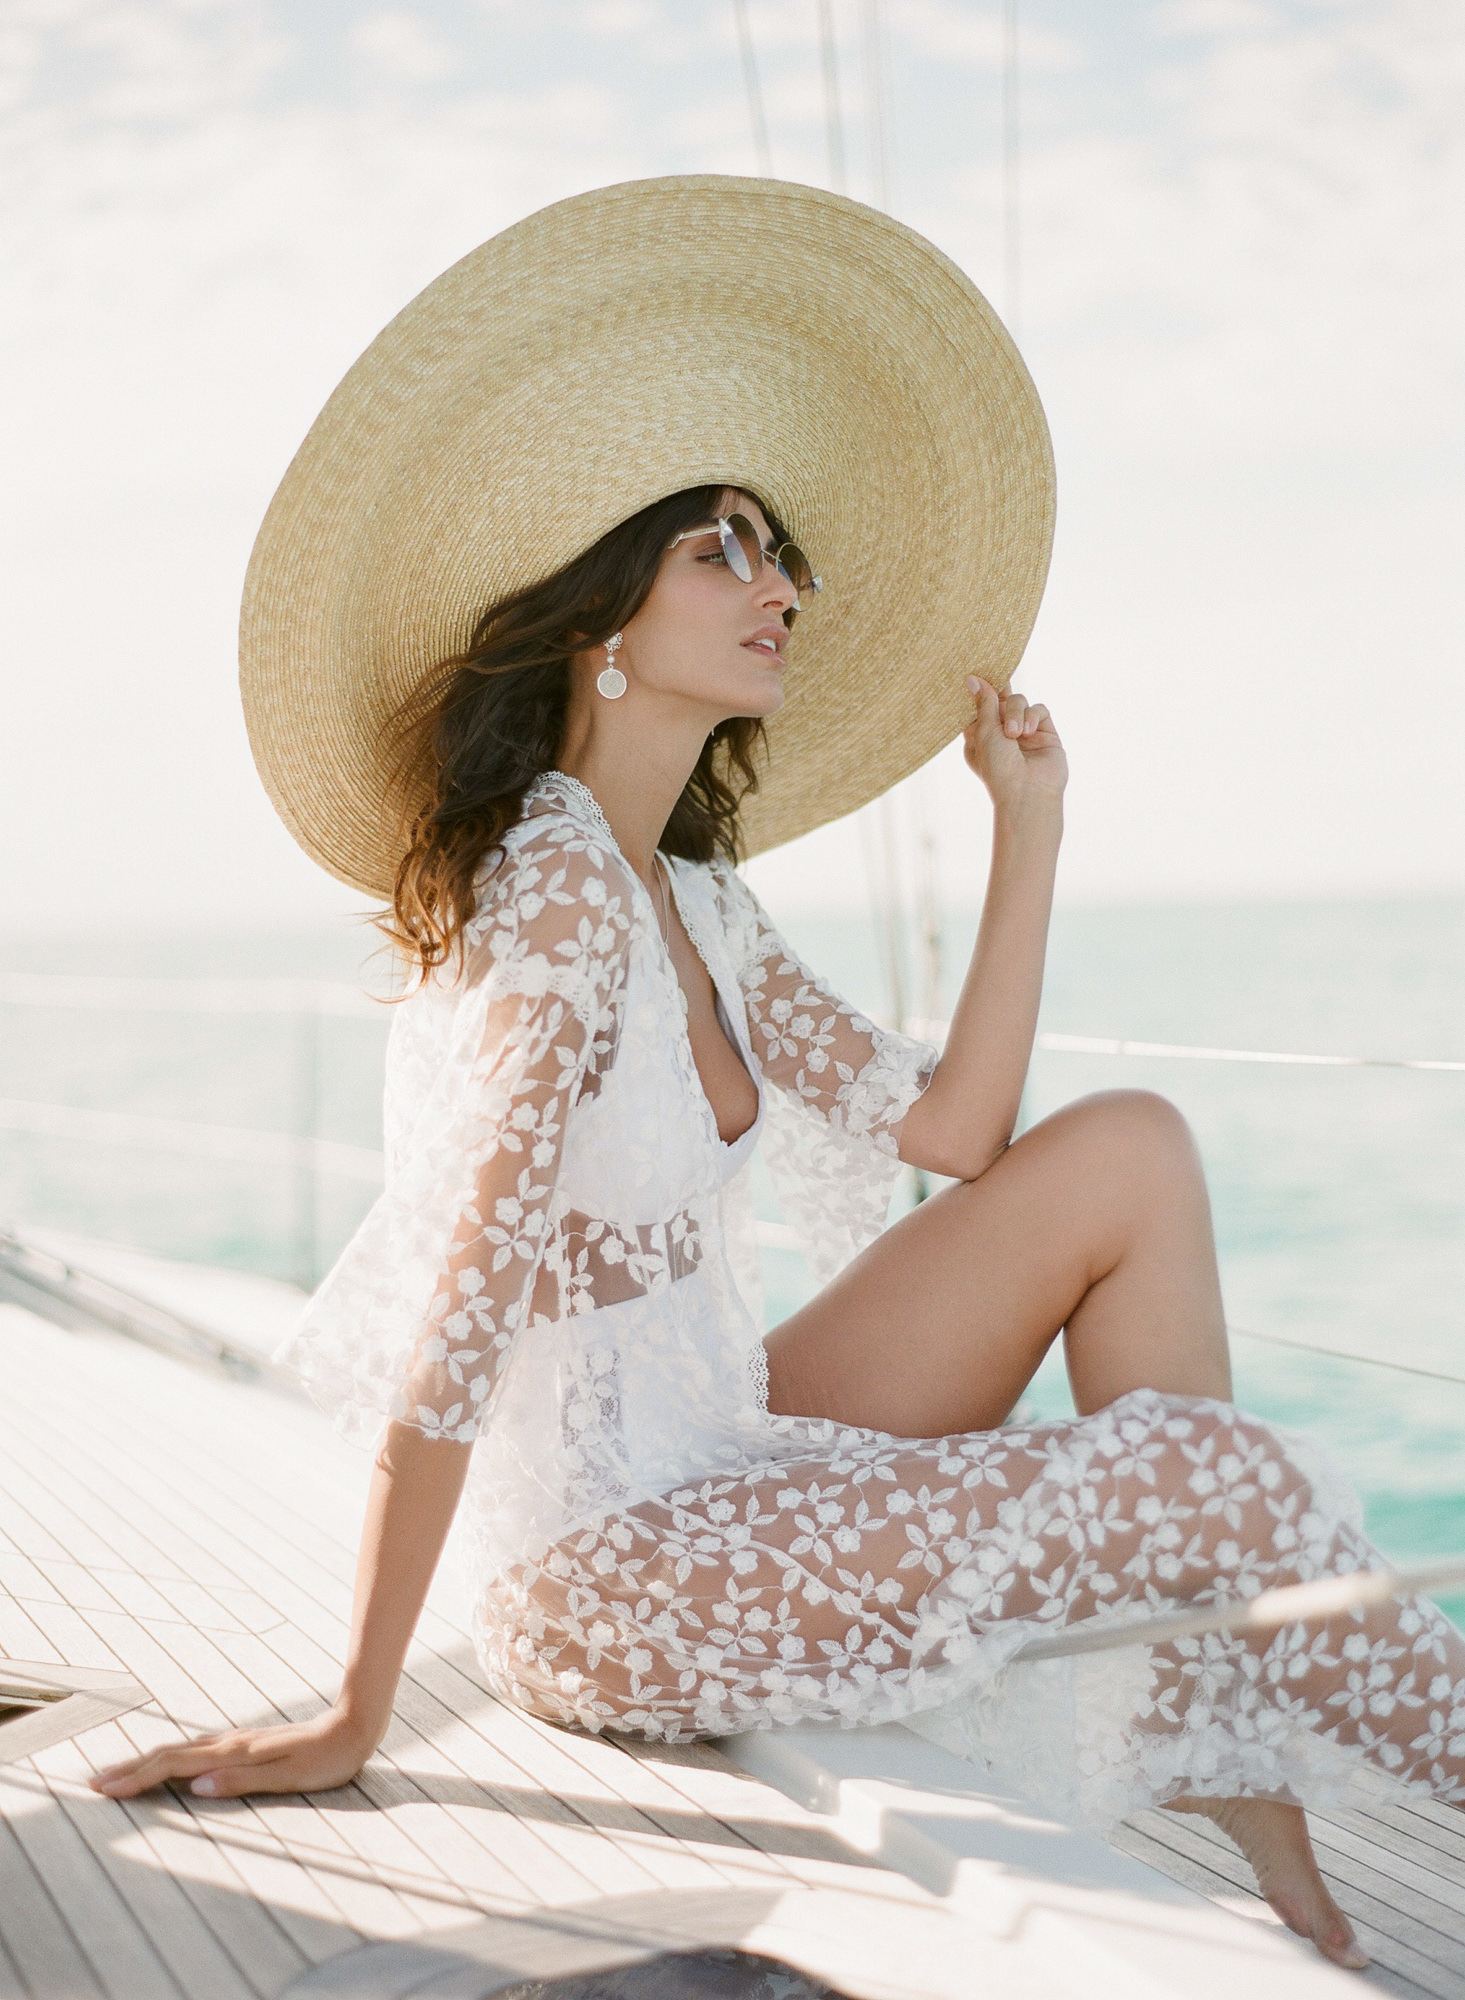 Fashionable bride with large straw hat lace cover up on yacht - Greg Finck Photography